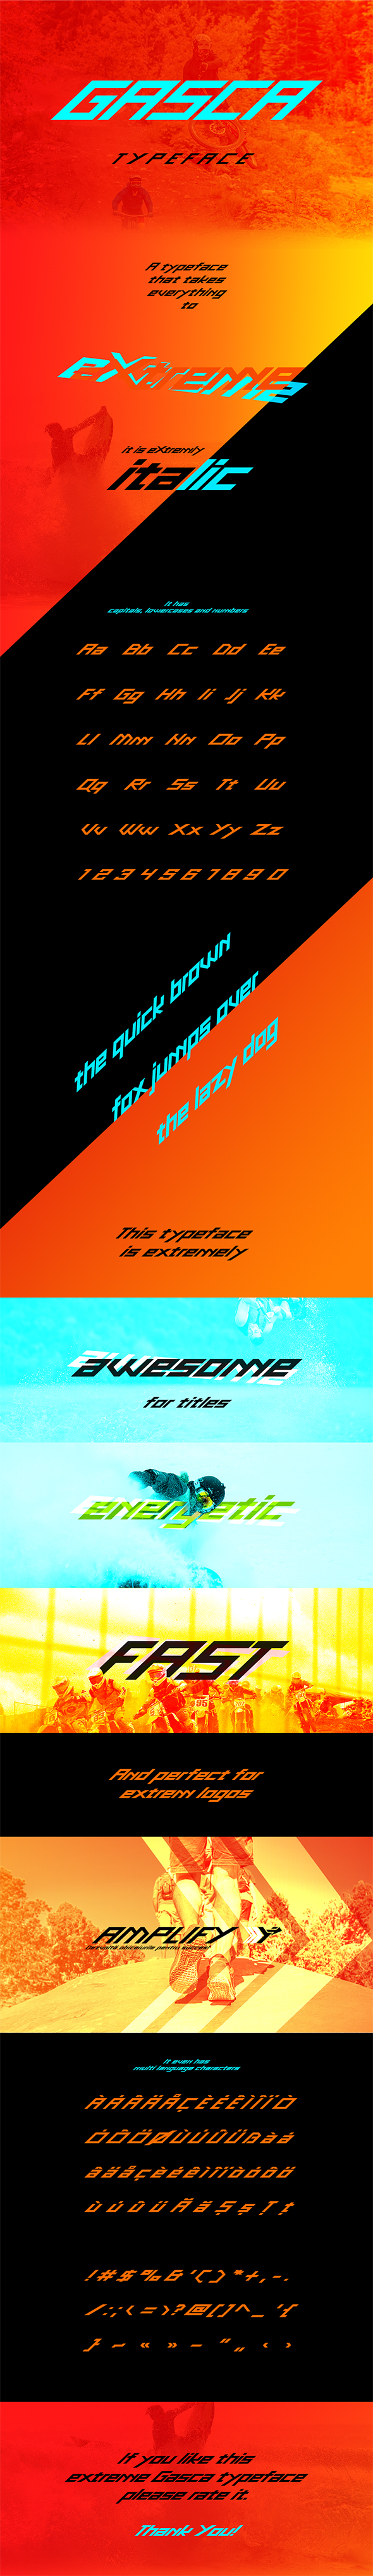 GraphicRiver Gasca Typeface 20792540